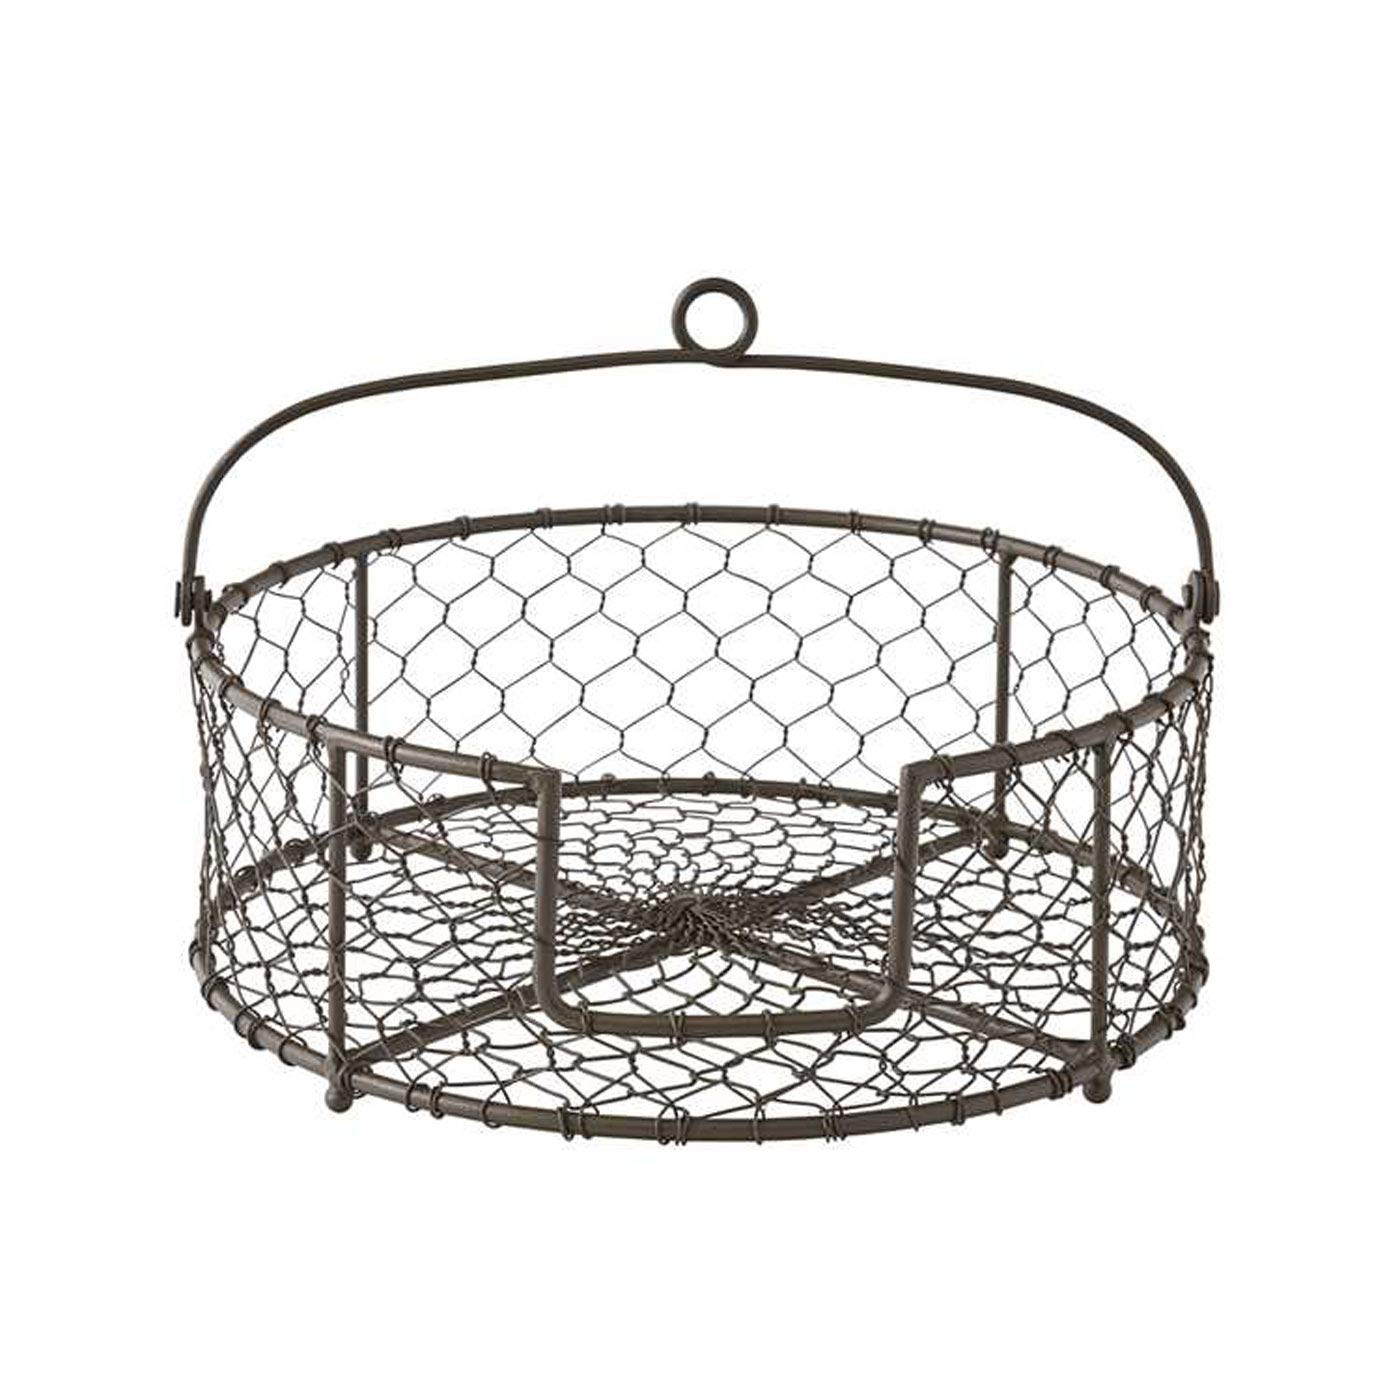 Park Designs Storage Chickenwire Plate Holder Cabinet Organizers by Park Designs